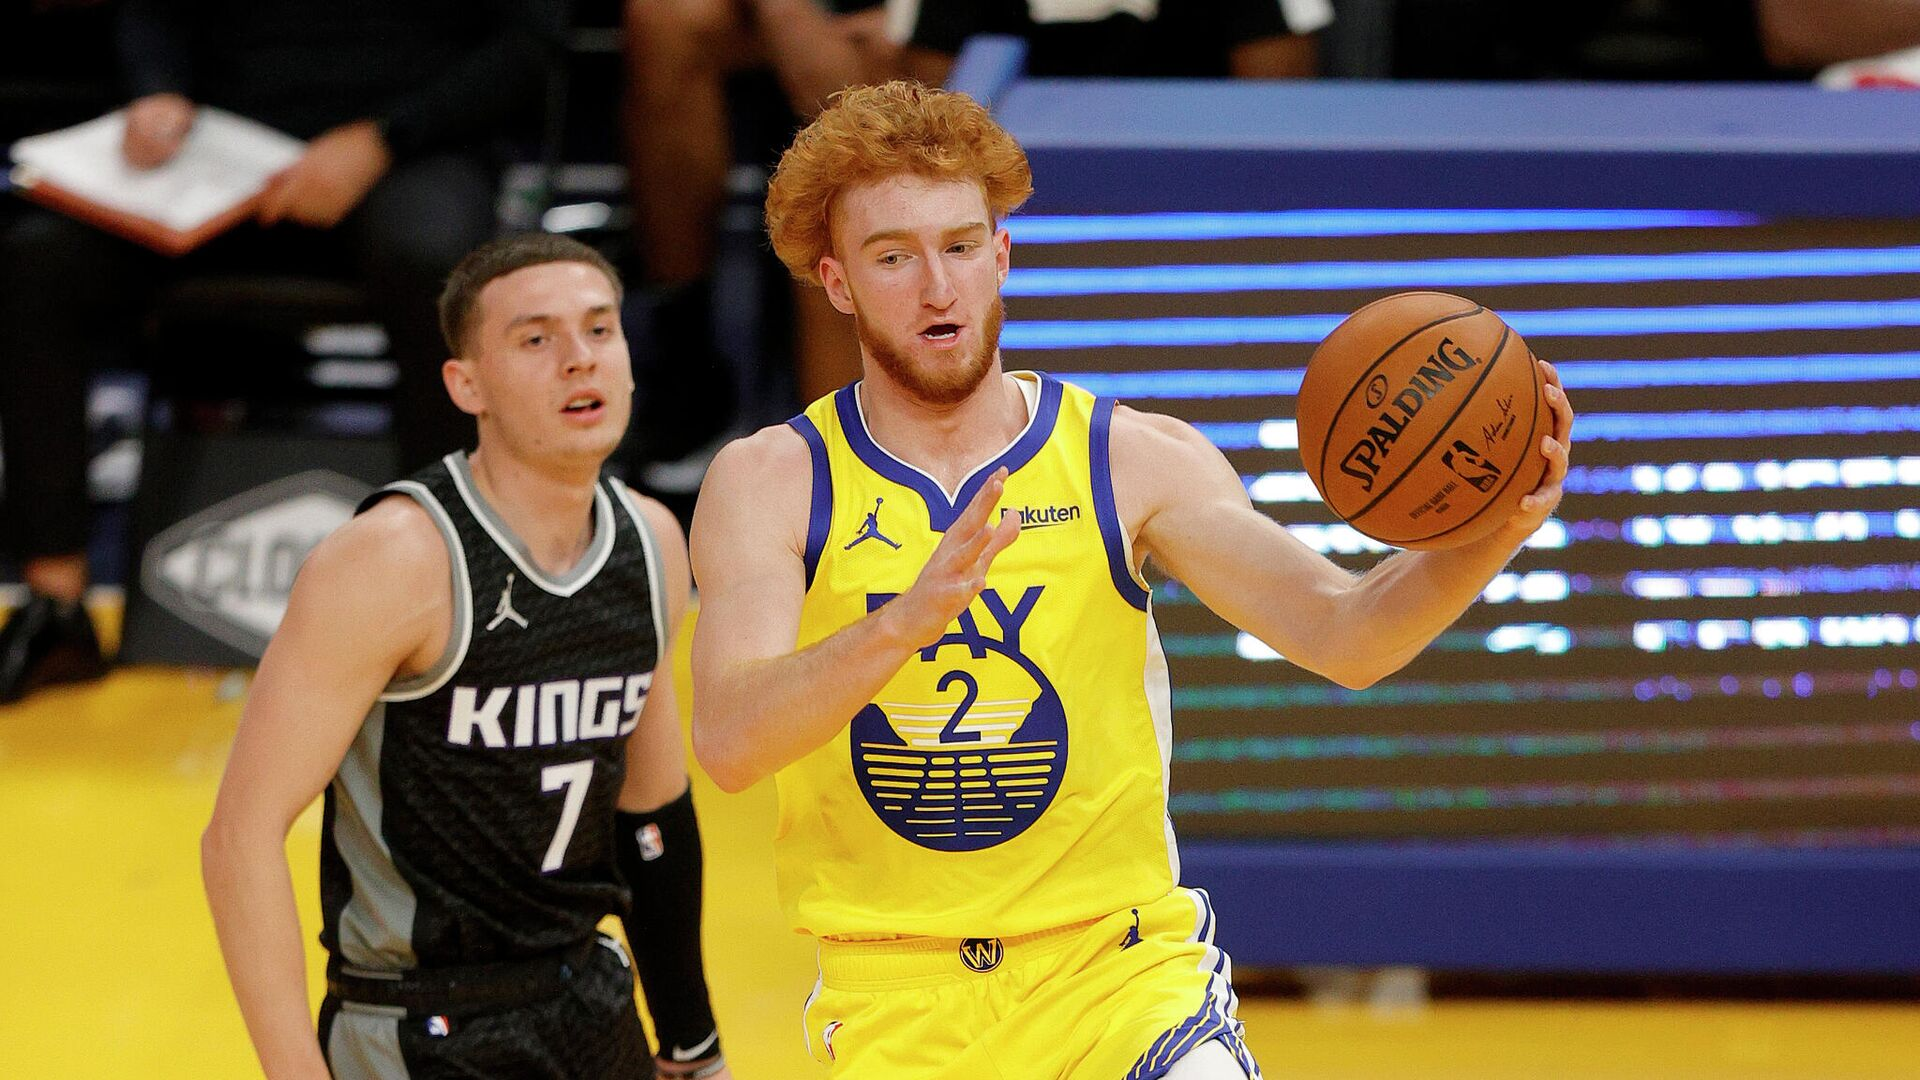 SAN FRANCISCO, CALIFORNIA - JANUARY 04: Nico Mannion #2 of the Golden State Warriors dribbles past Kyle Guy #7 of the Sacramento Kings at Chase Center on January 04, 2021 in San Francisco, California. NOTE TO USER: User expressly acknowledges and agrees that, by downloading and or using this photograph, User is consenting to the terms and conditions of the Getty Images License Agreement.   Ezra Shaw/Getty Images/AFP - РИА Новости, 1920, 05.01.2021